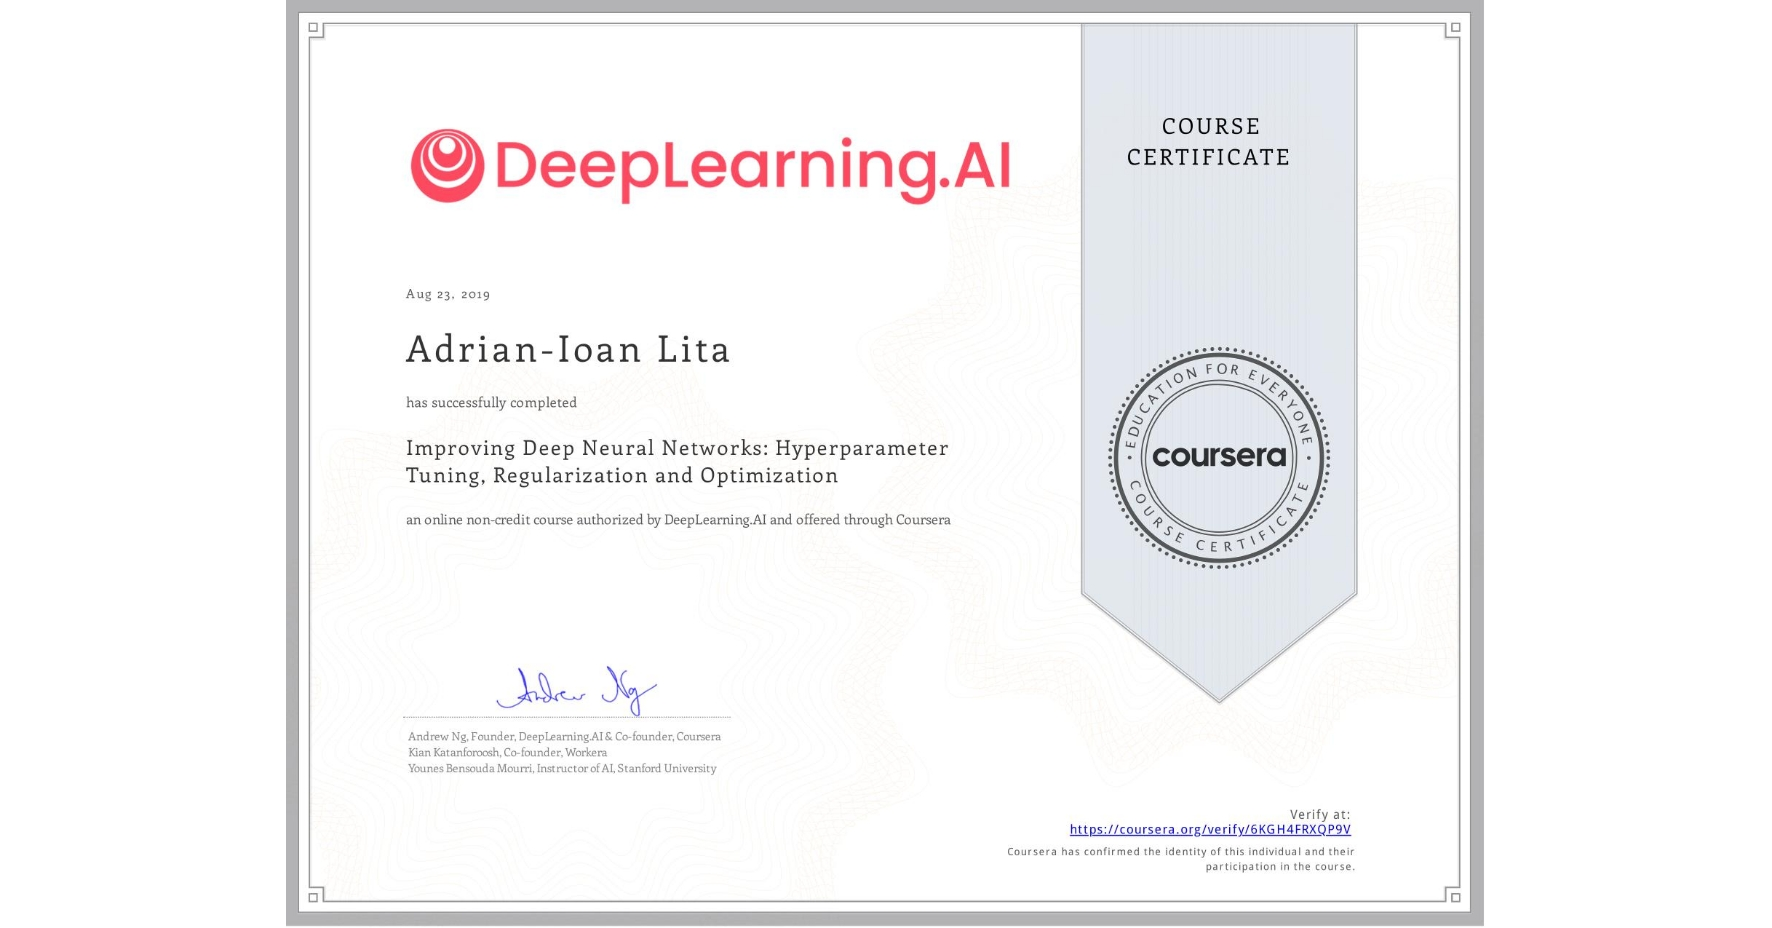 View certificate for Adrian-Ioan Lita, Improving Deep Neural Networks: Hyperparameter Tuning, Regularization and Optimization, an online non-credit course authorized by DeepLearning.AI and offered through Coursera